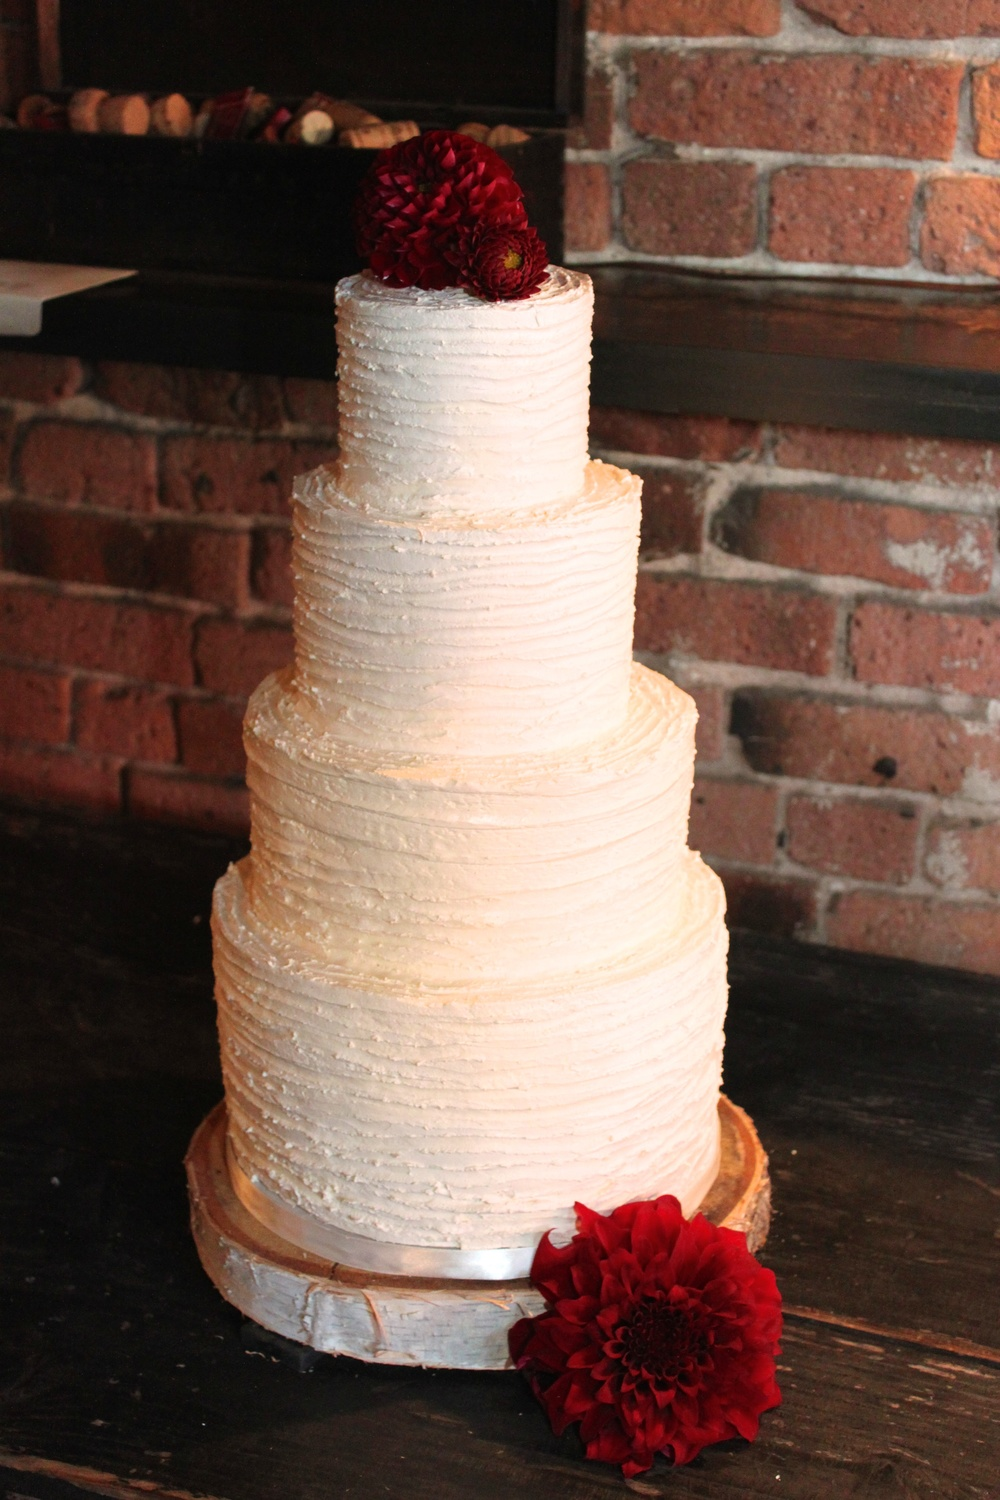 Ridged buttercream wedding cake 7755.jpg